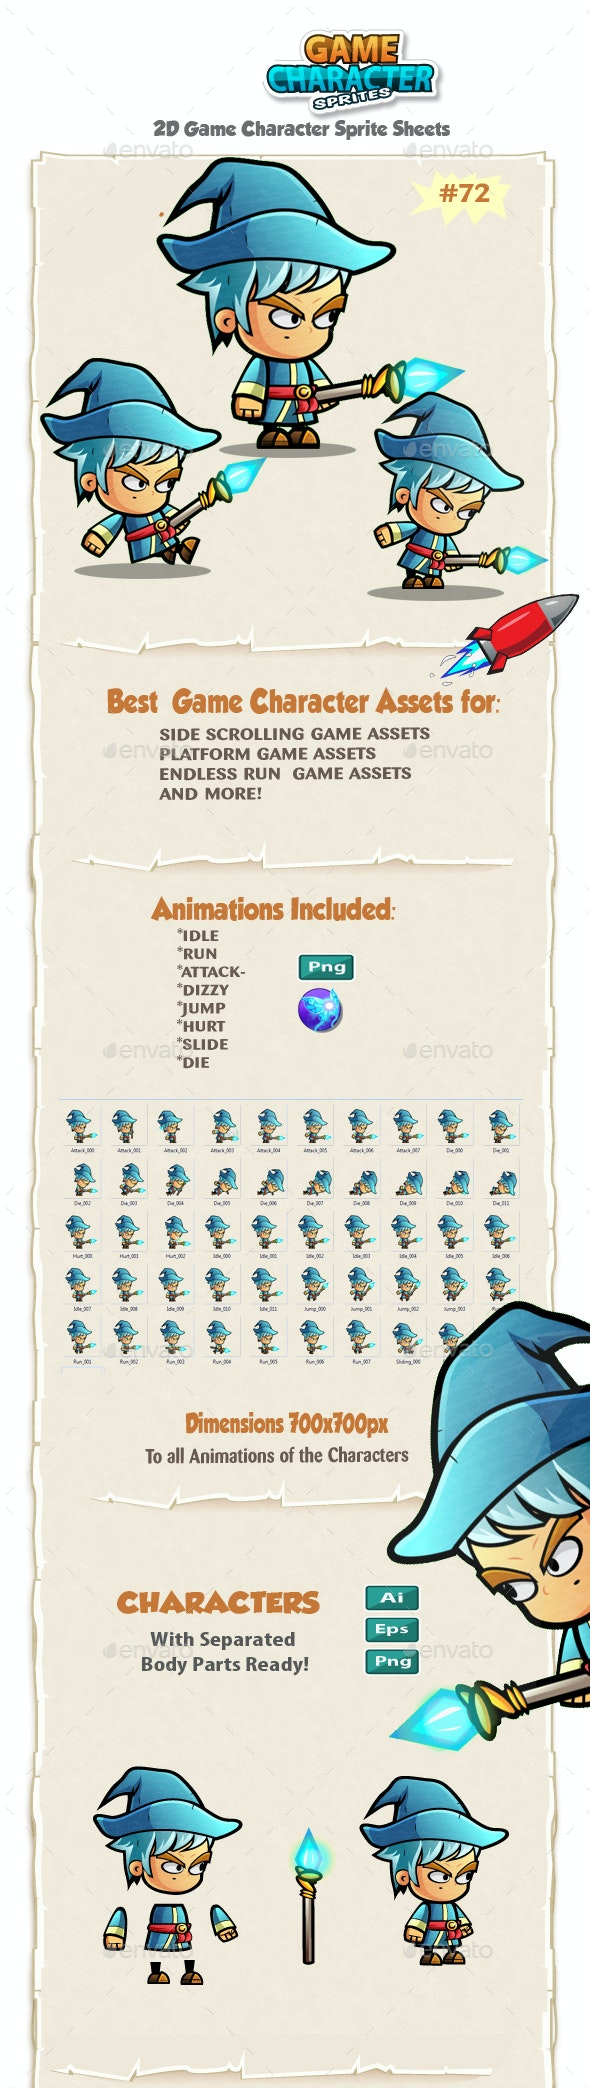 Mage Game Character Sprites 72 - Sprites Game Assets